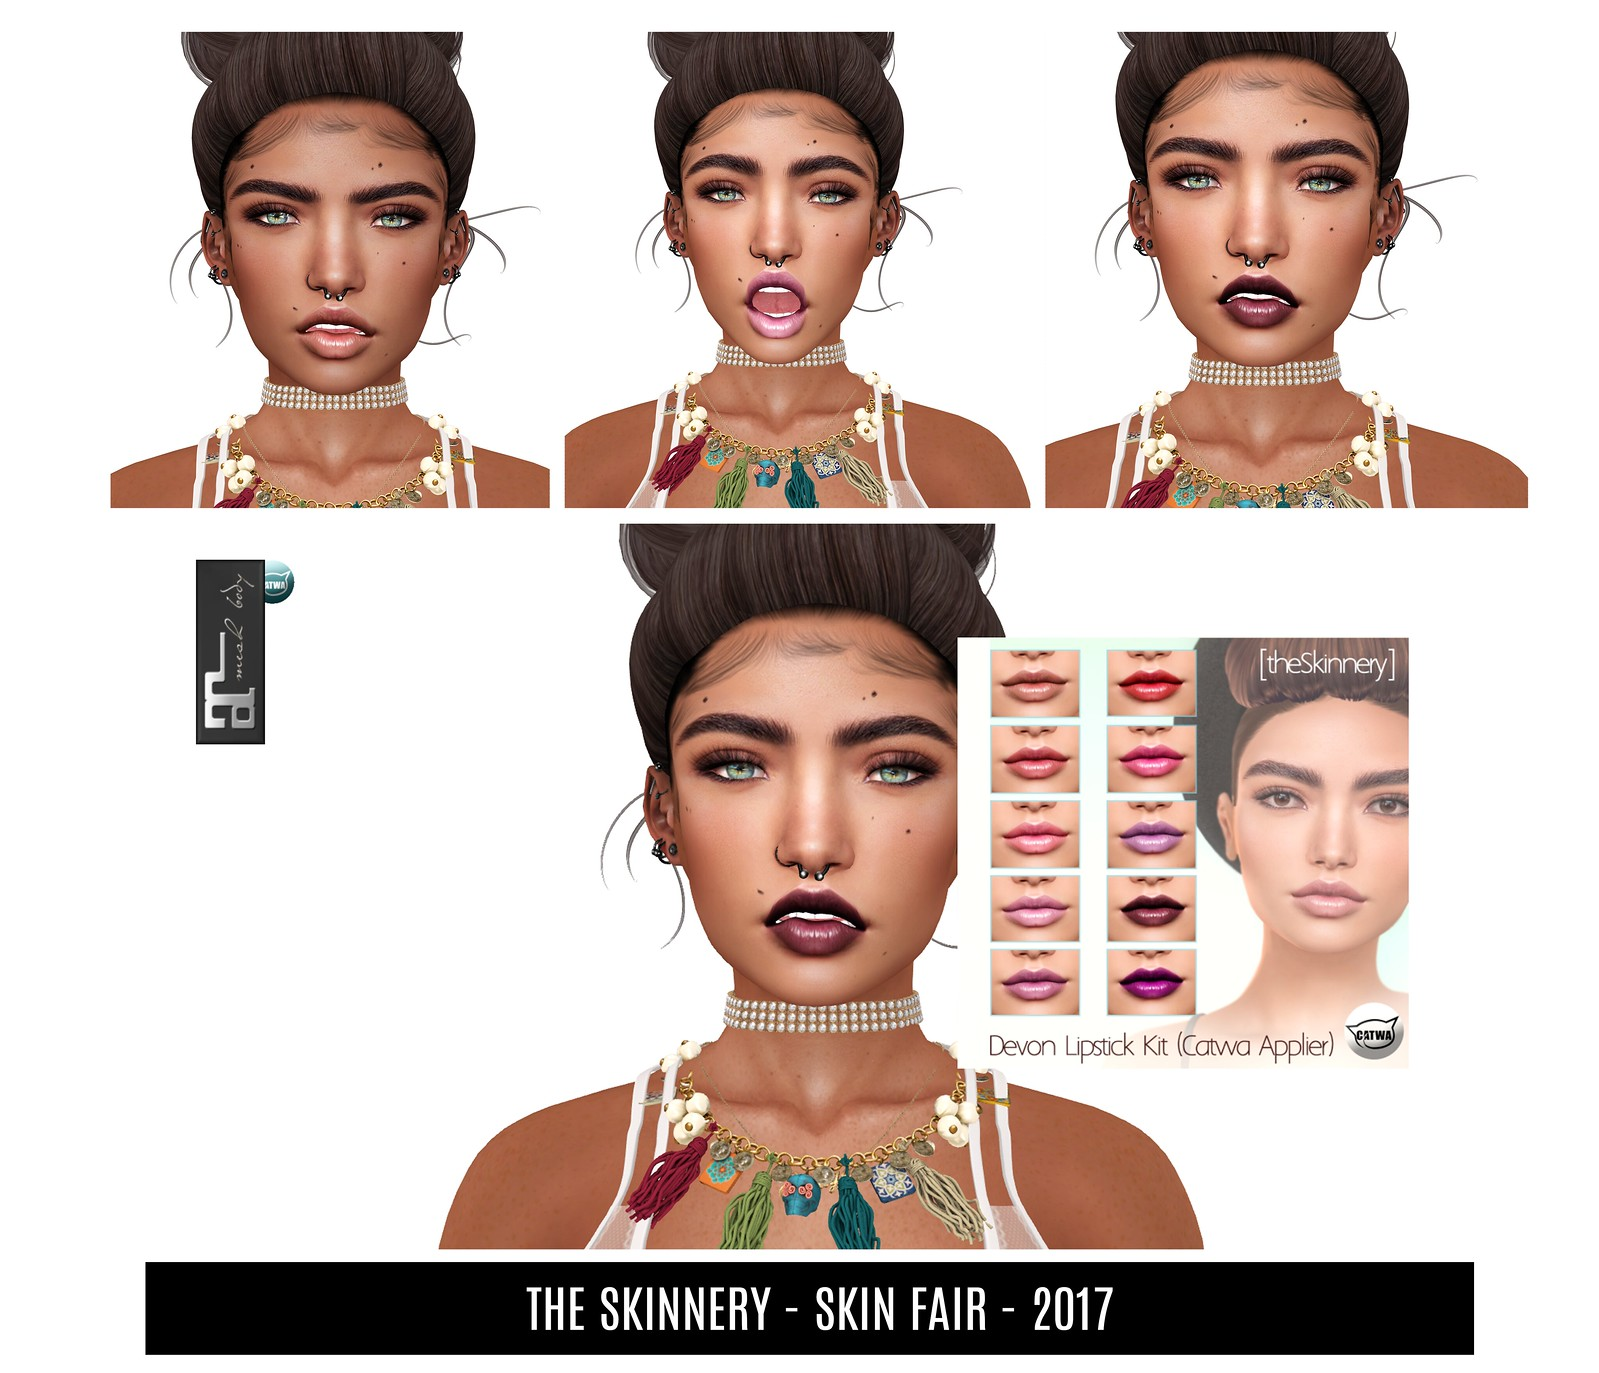 THE SKINNERY - SKIN FAIR 2017